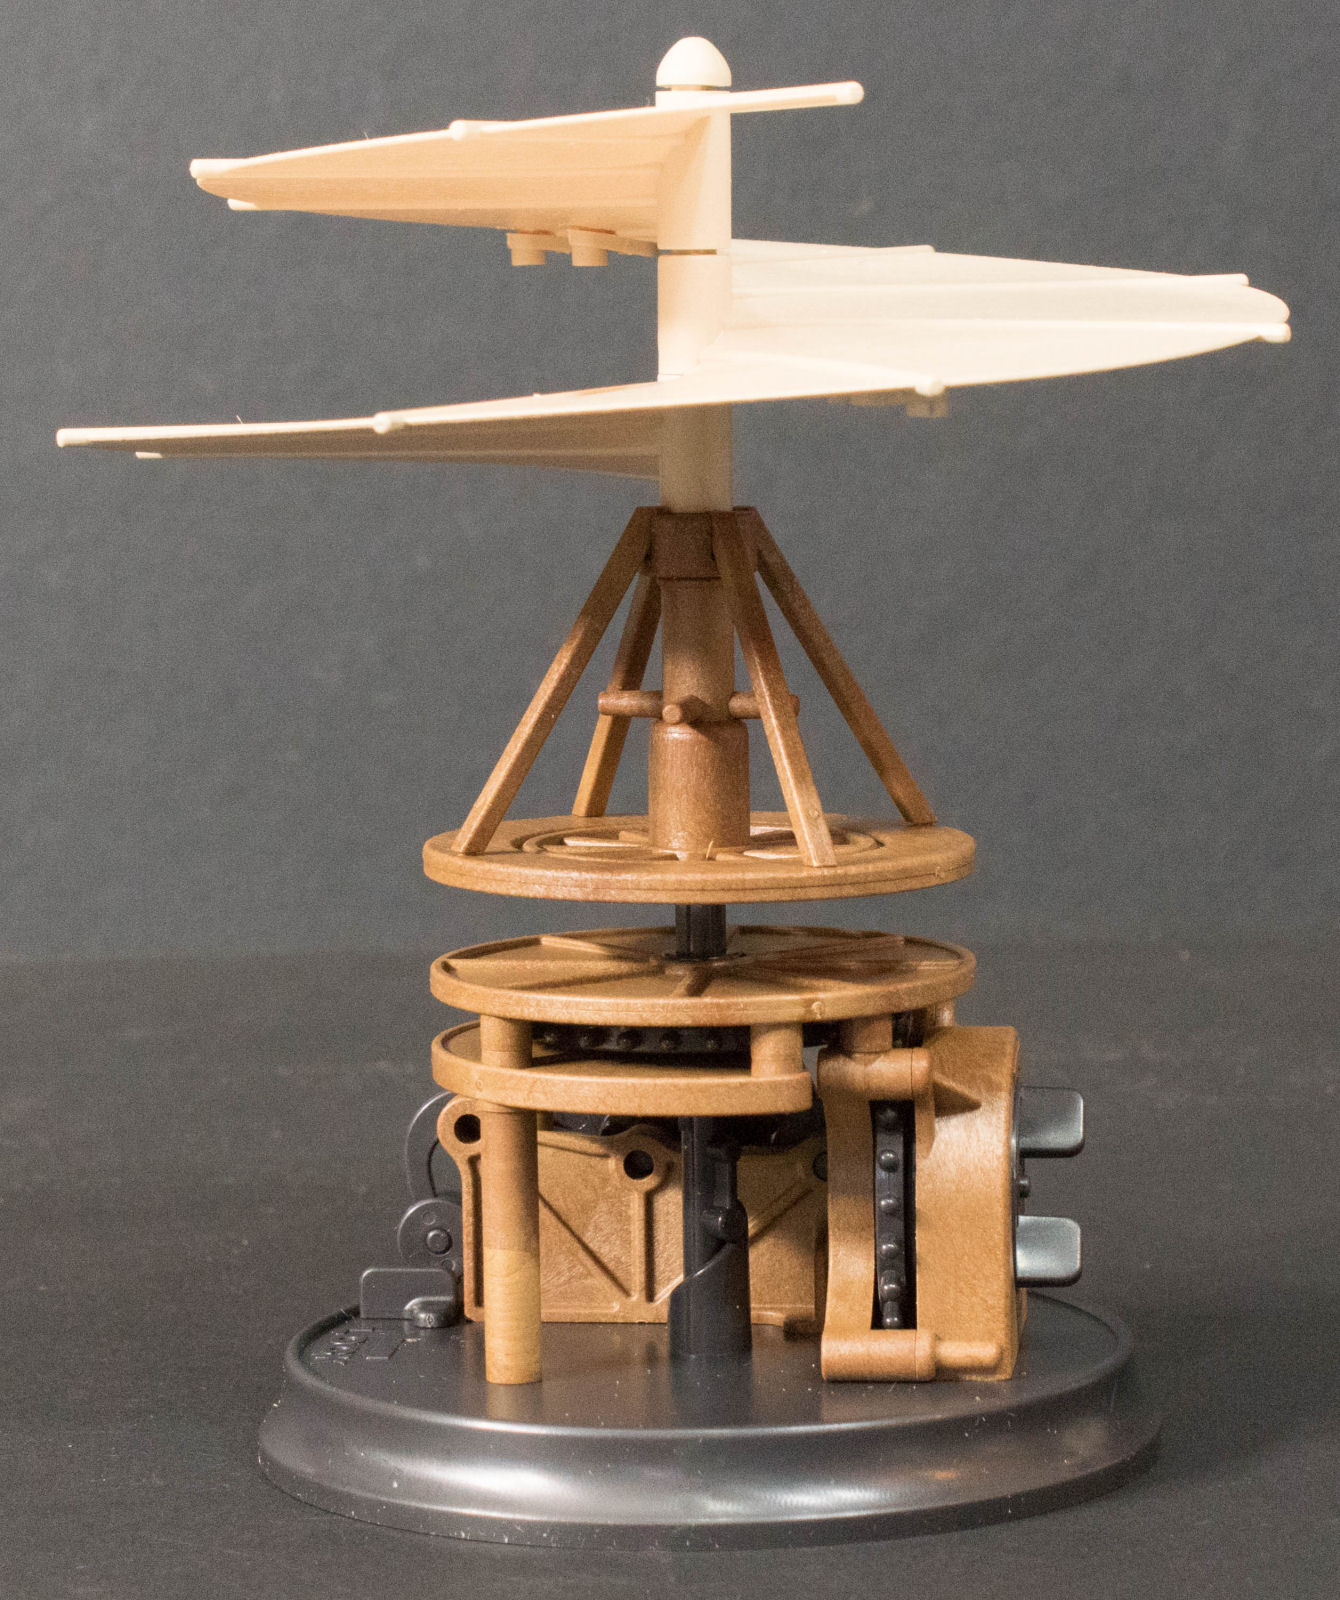 Academy 18159 Da Vinci Helicopter Kit First Look